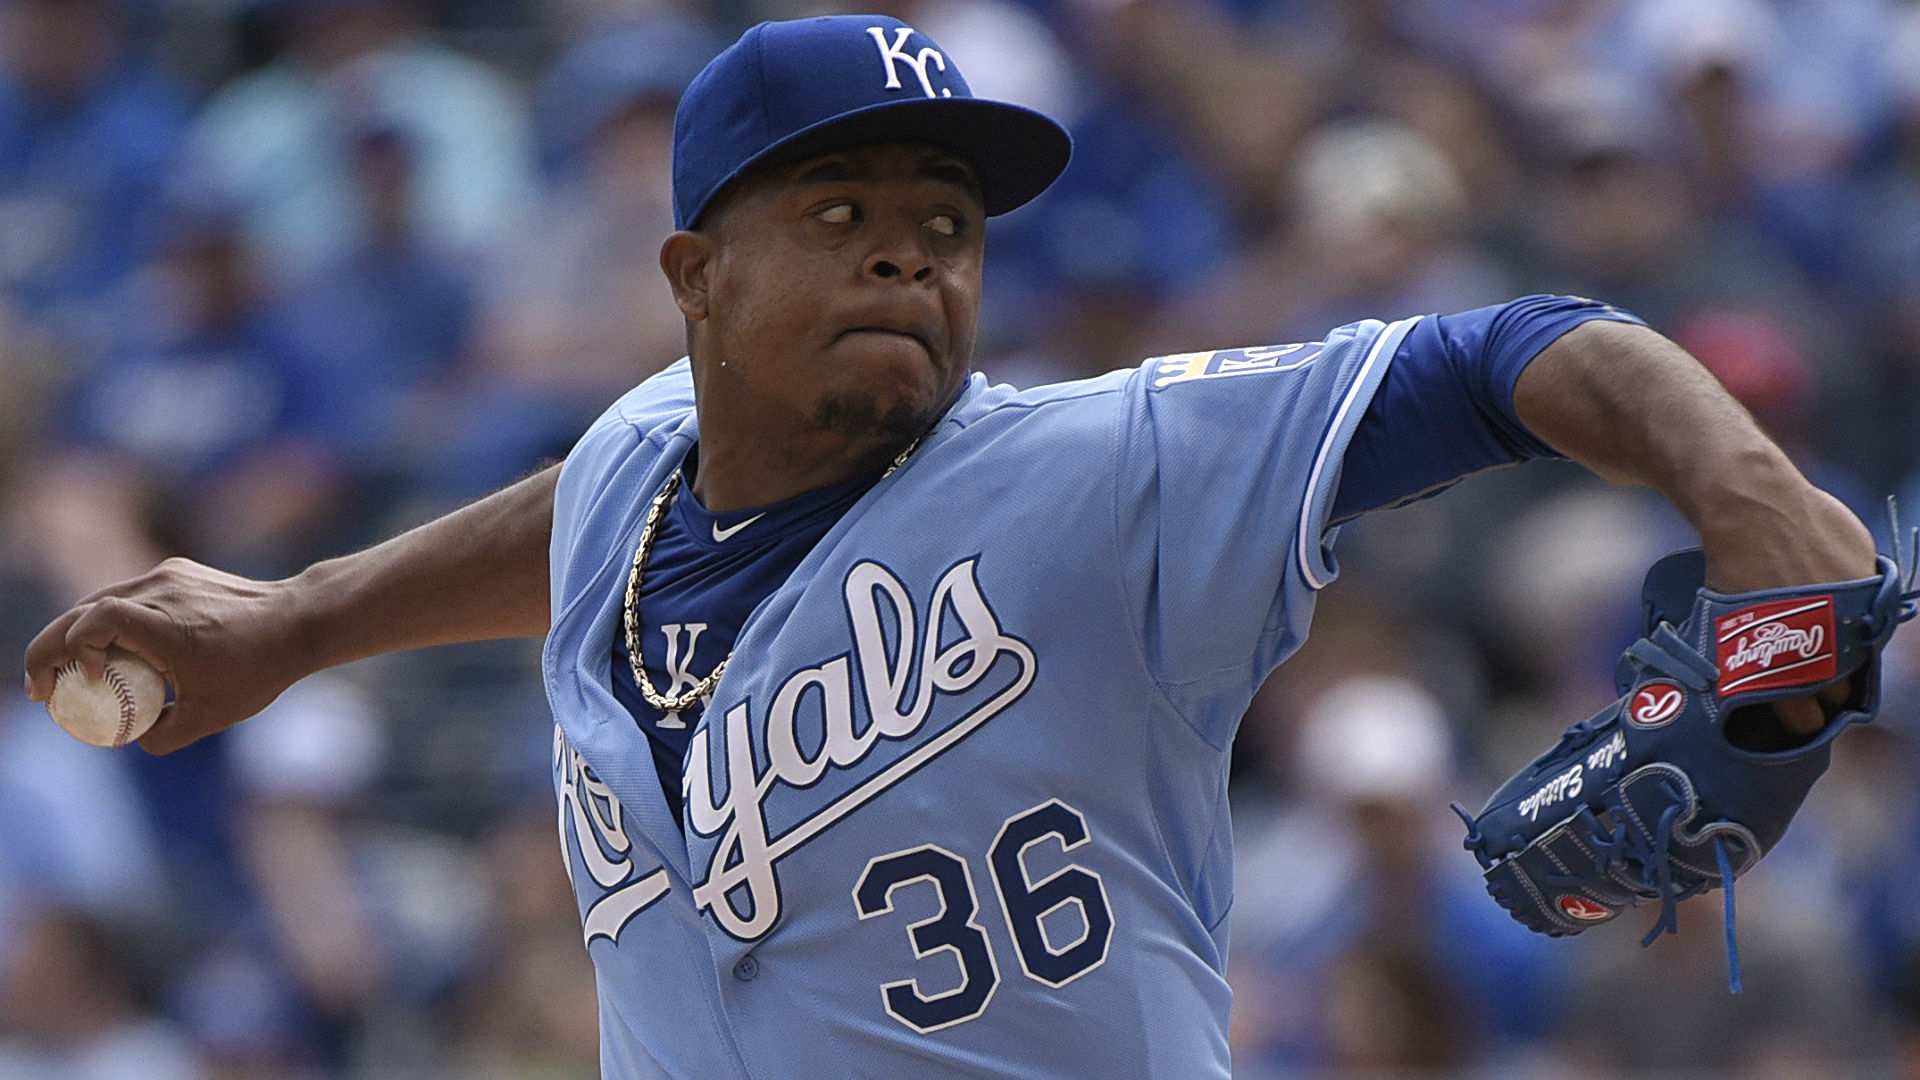 MLB odds and picks – All signs point to Royals' eighth straight win